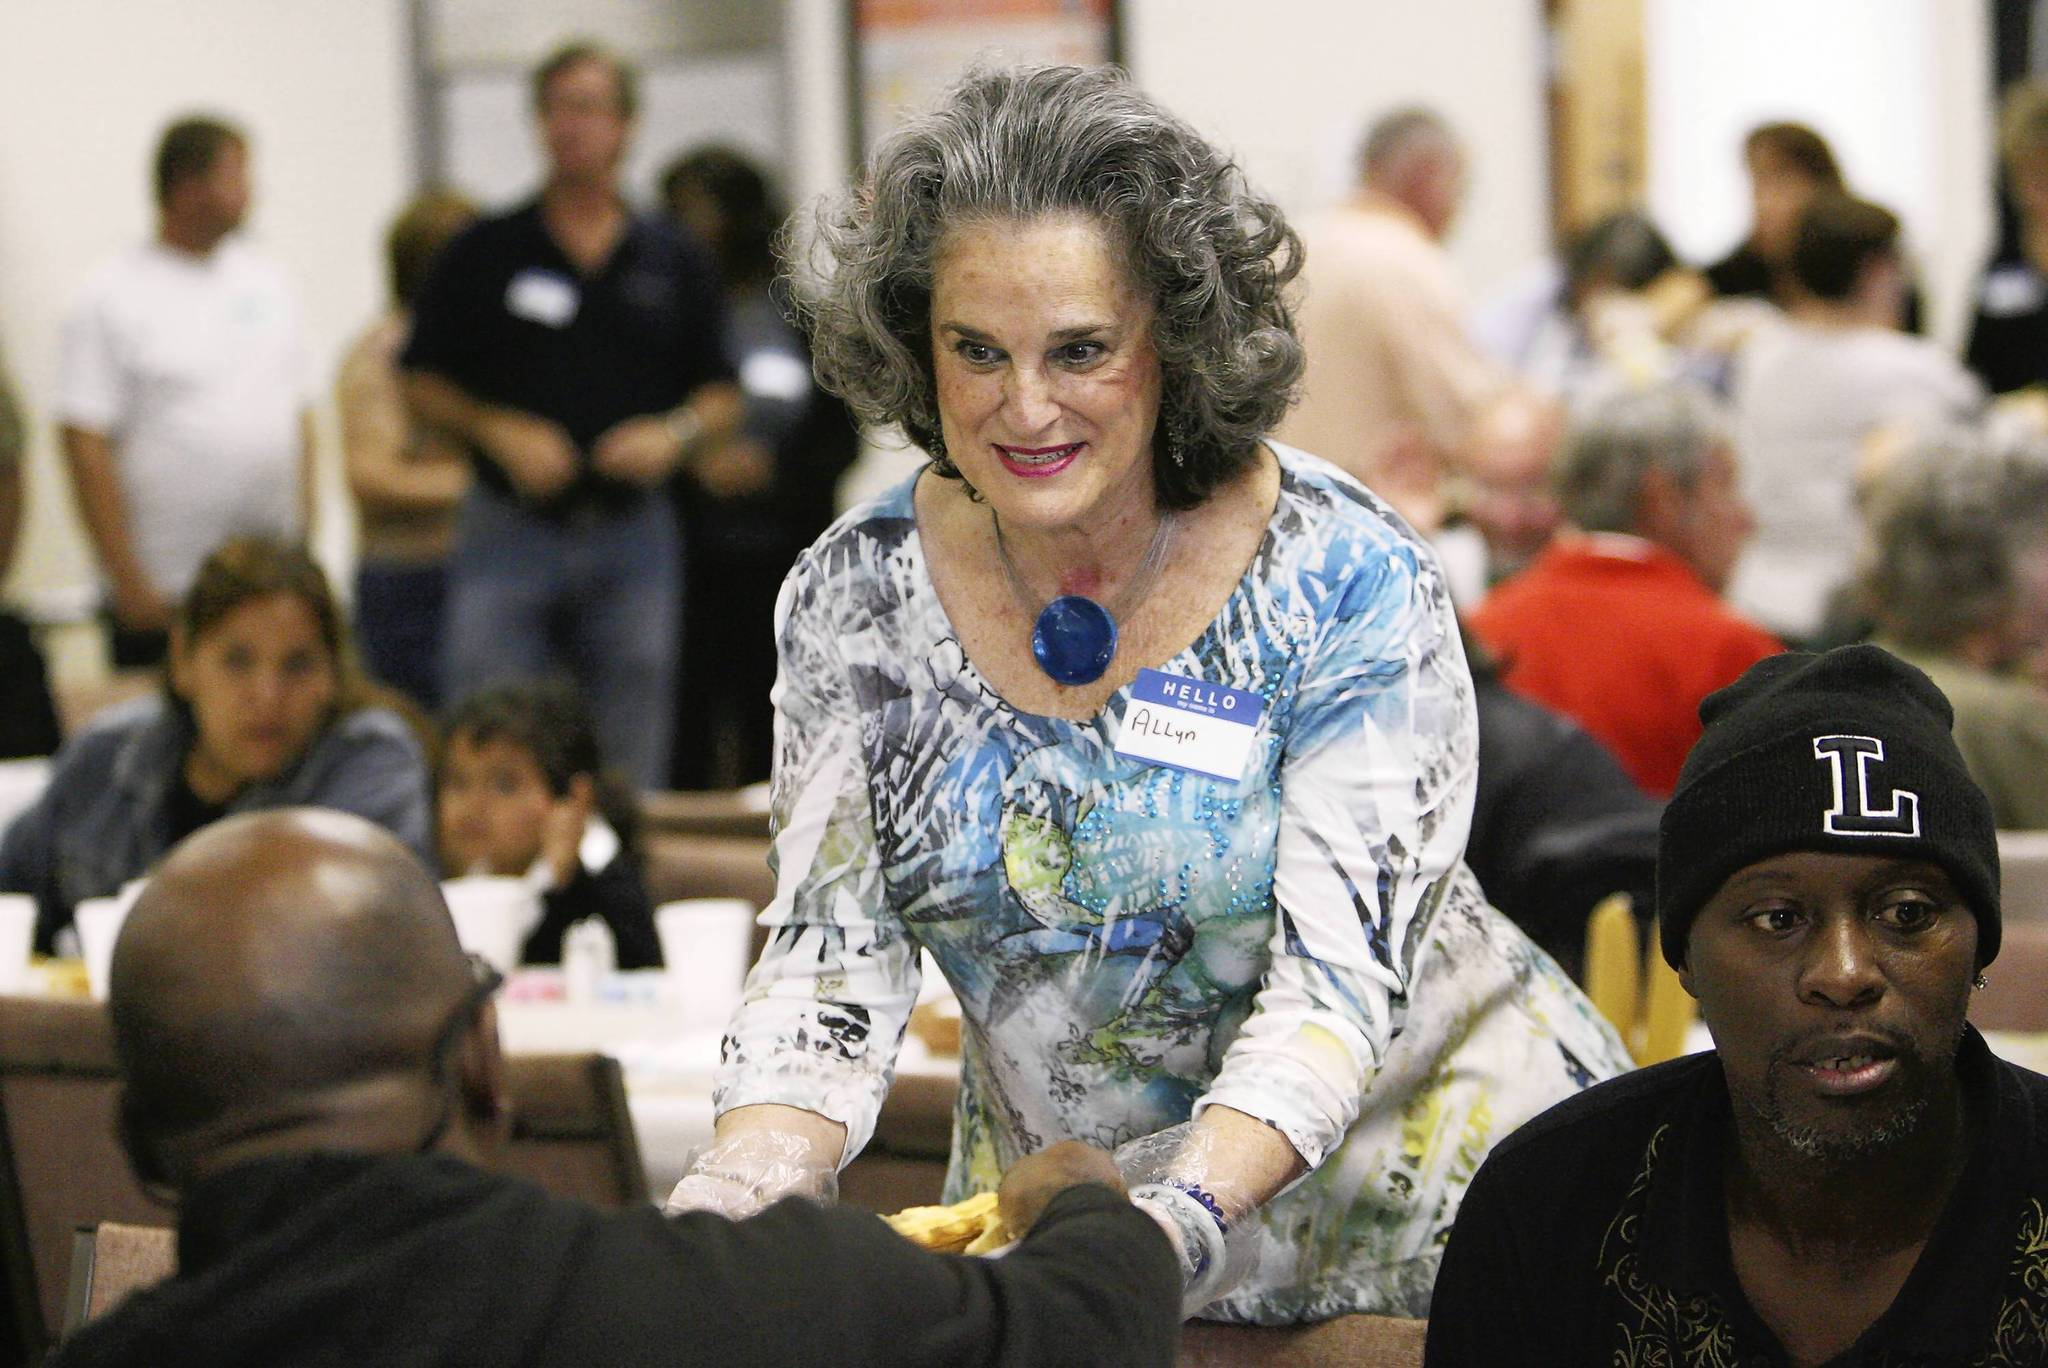 Volunteer Allyn Griffin serves guests at the 29th annual free community Thanksgiving dinner Thursday at First Baptist Church of Apopka.